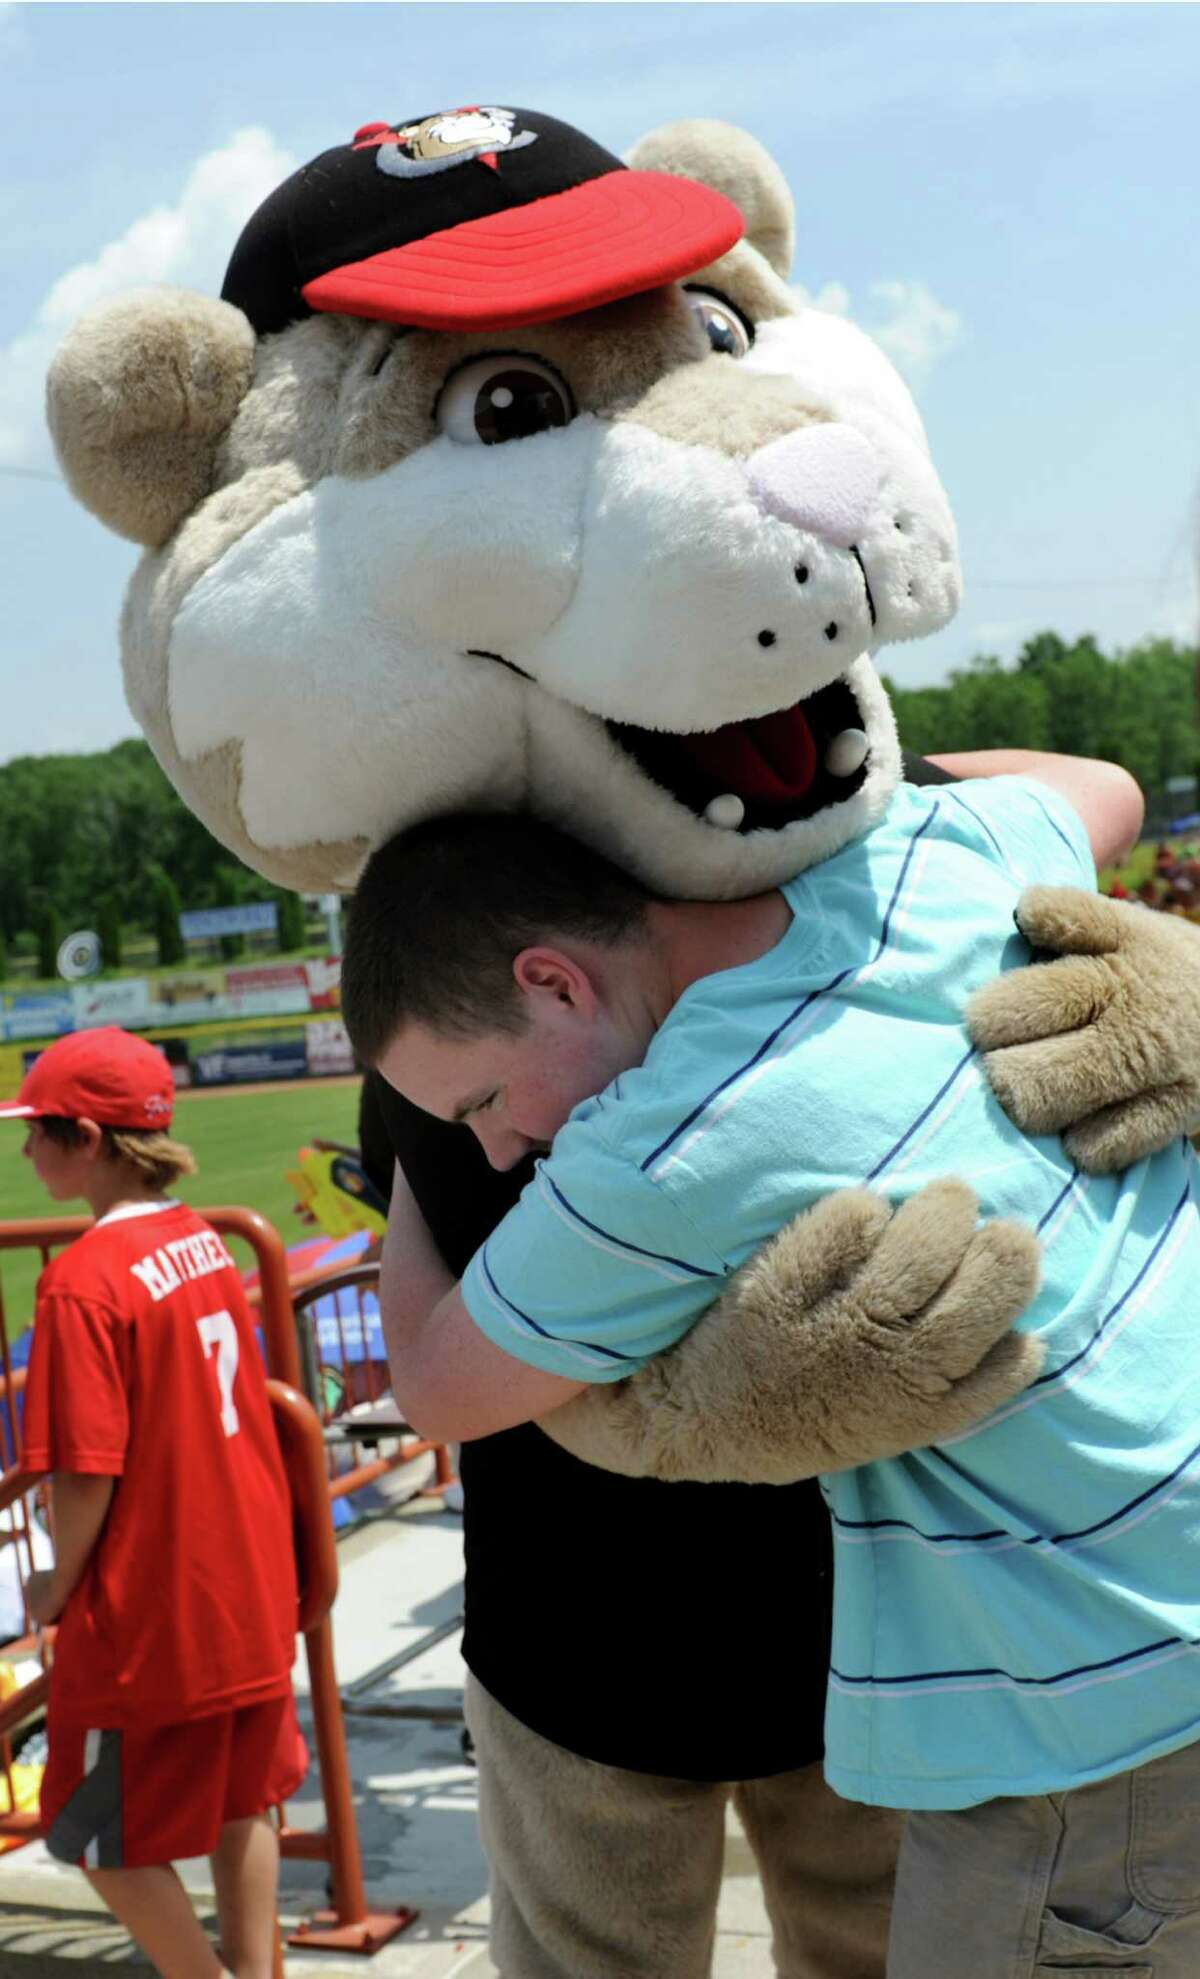 Mascot South Paw gets a hug from a young fan from Wildwood School at the ValleyCats vs. Lowell Spinners baseball game on Tuesday, June 17, 2014, at Bruno Stadium in Troy, N.Y. (Cindy Schultz / Times Union)